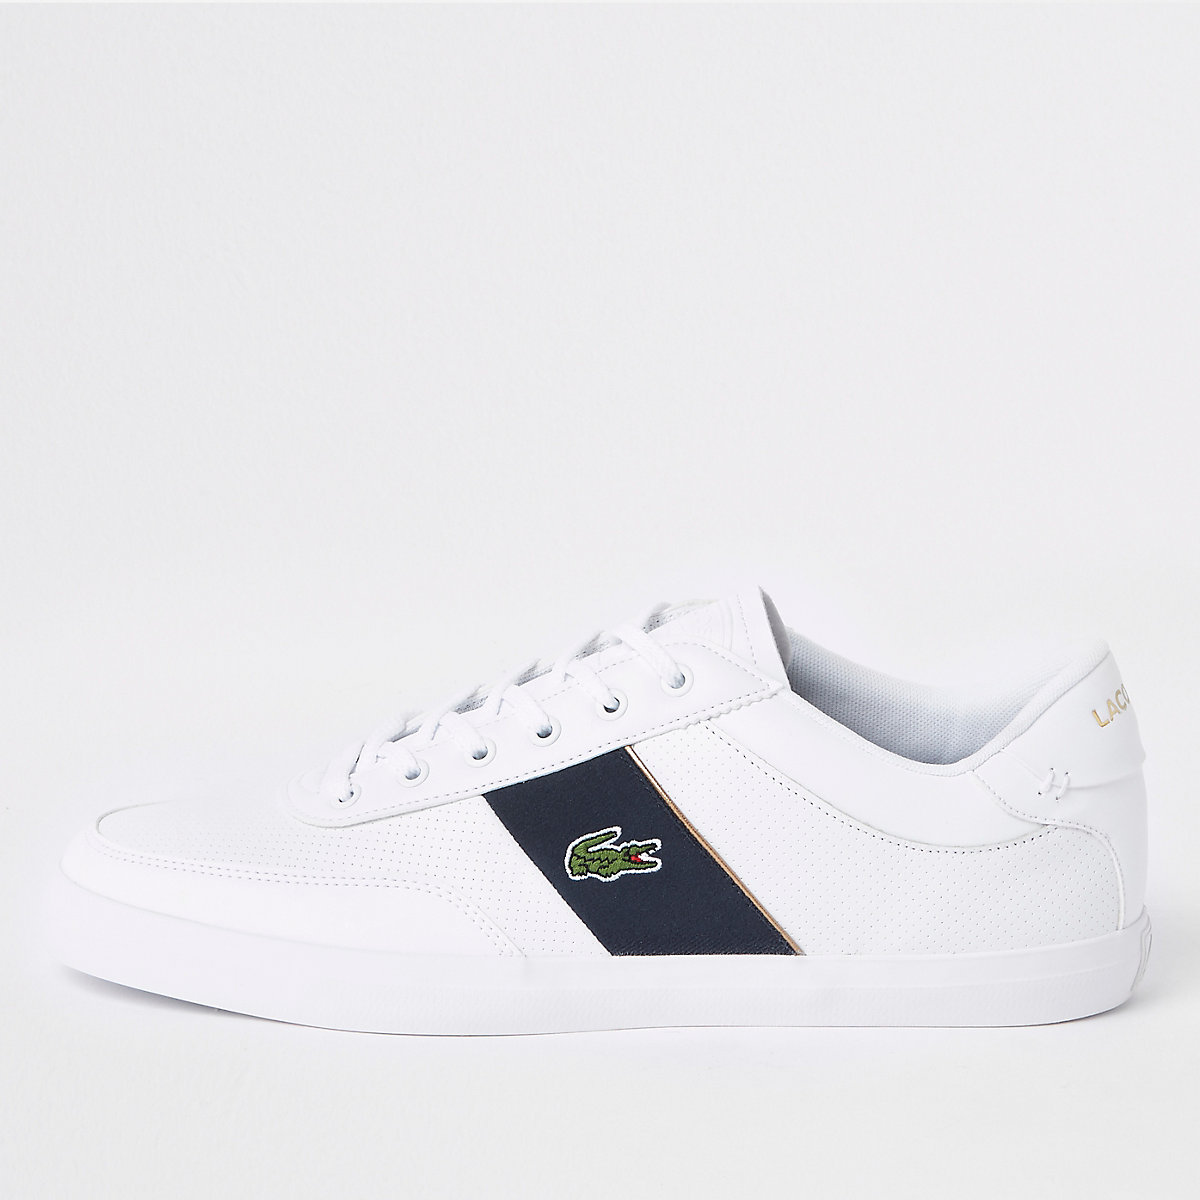 Lacoste white leather Courtmaster sneakers